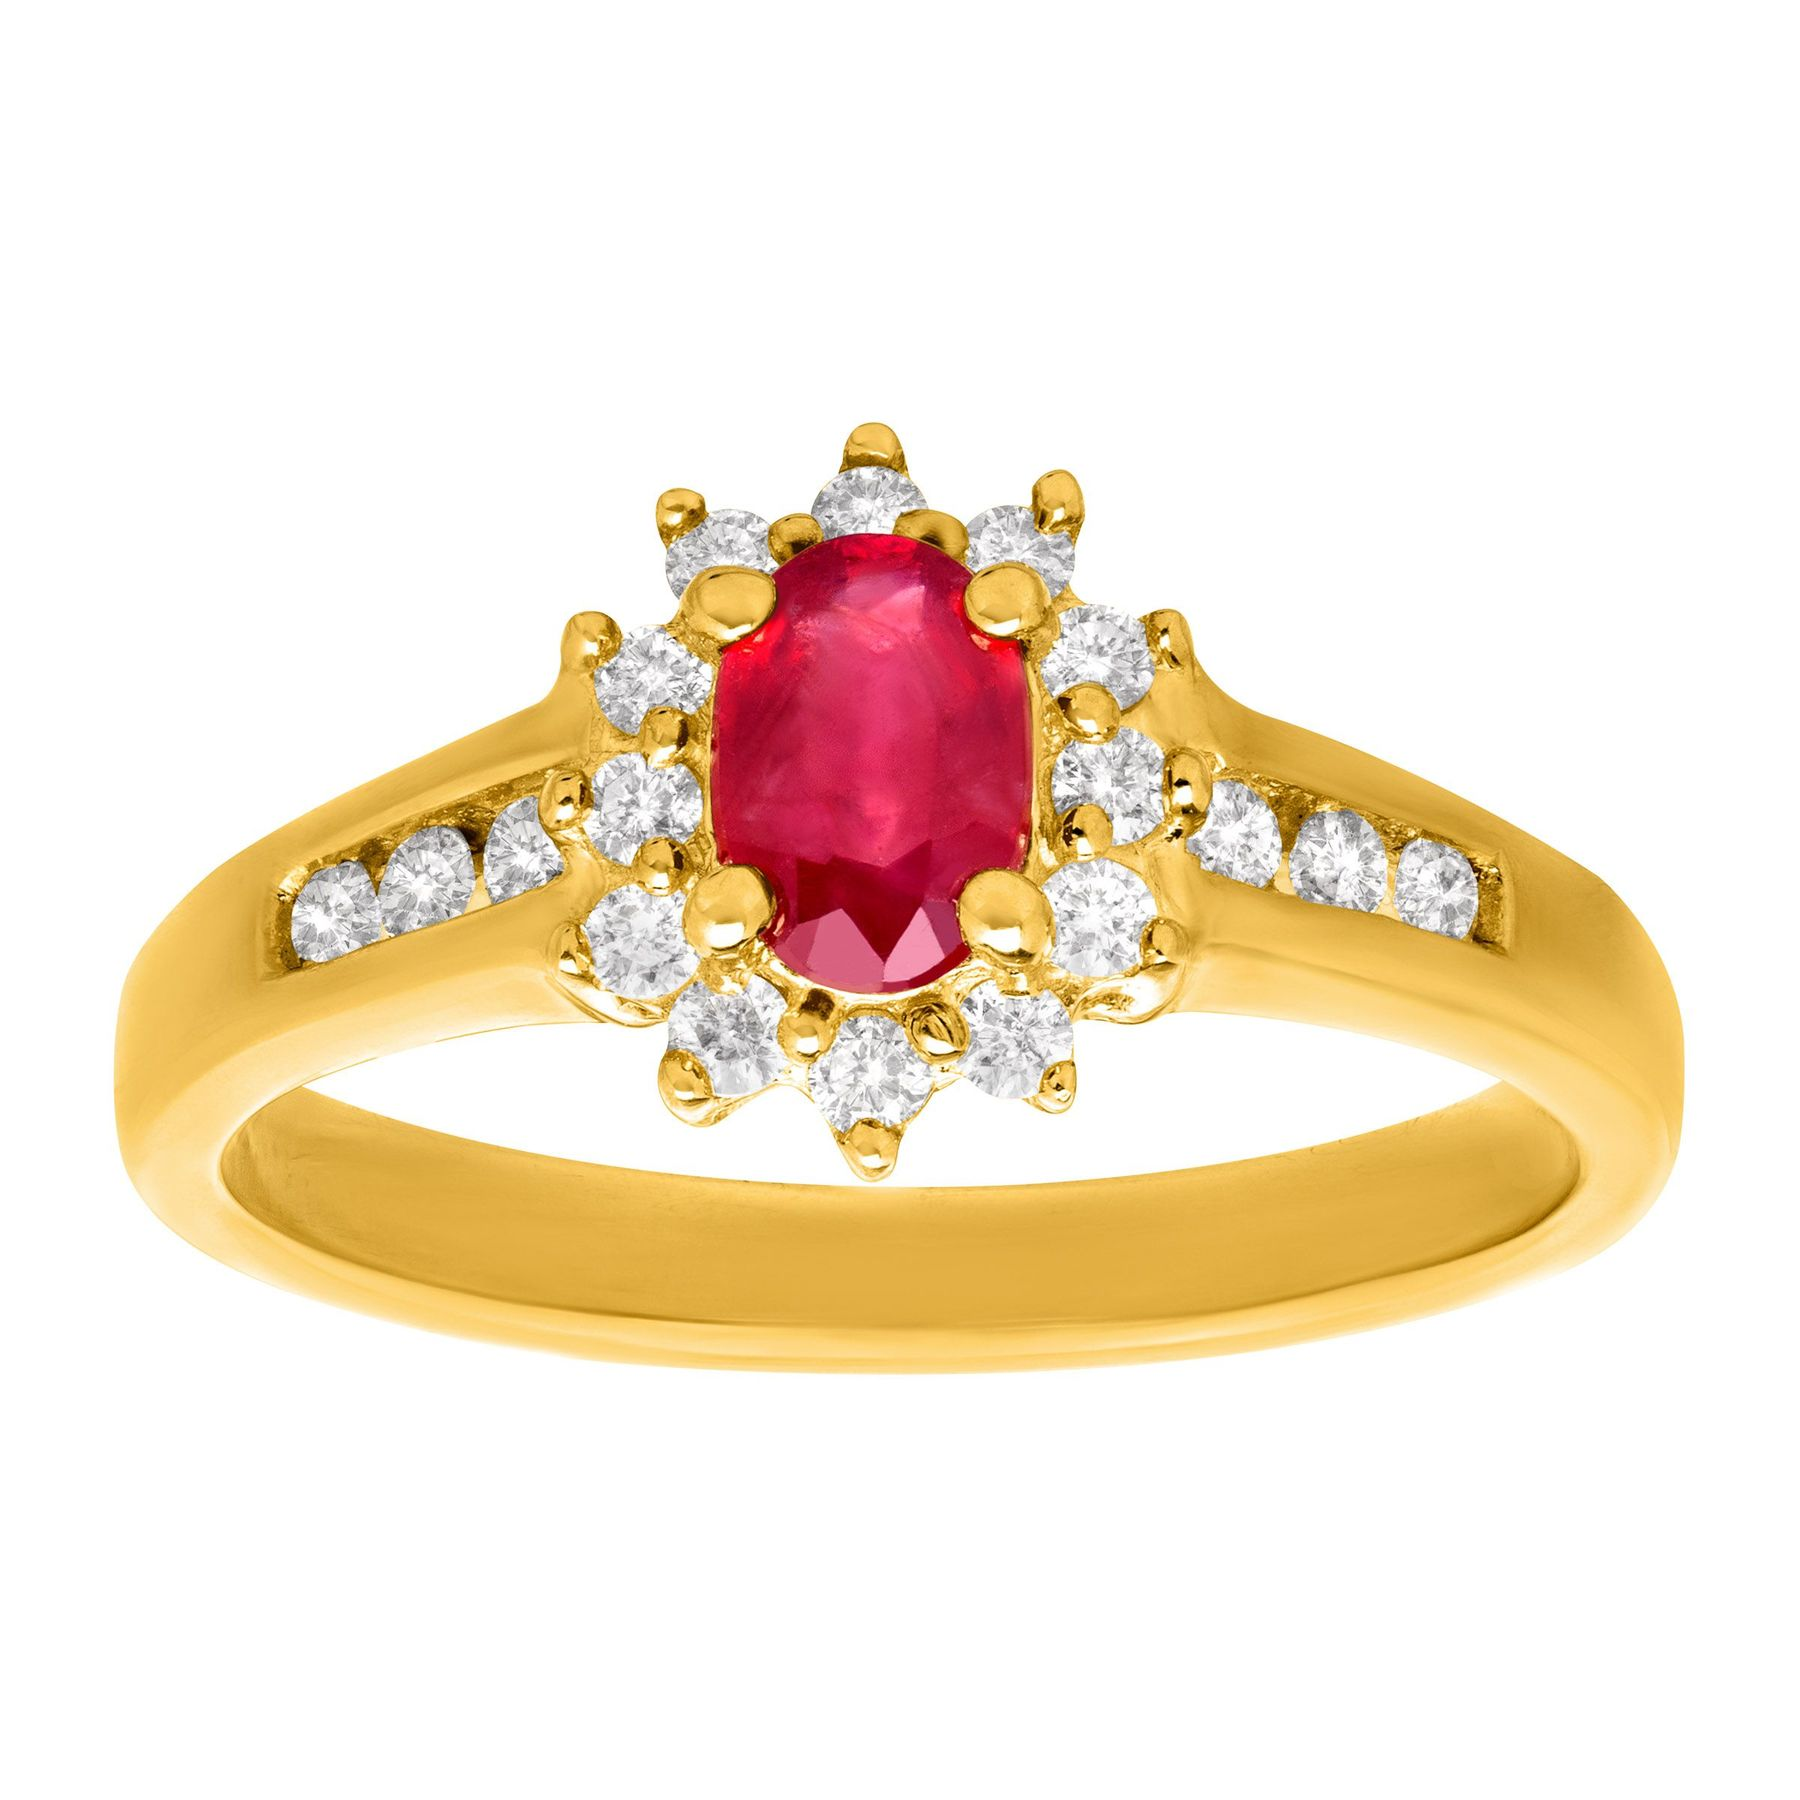 engagement ruby hgk details diamond rings a lotfinder ring lot harry by jewelry natural and winston rare